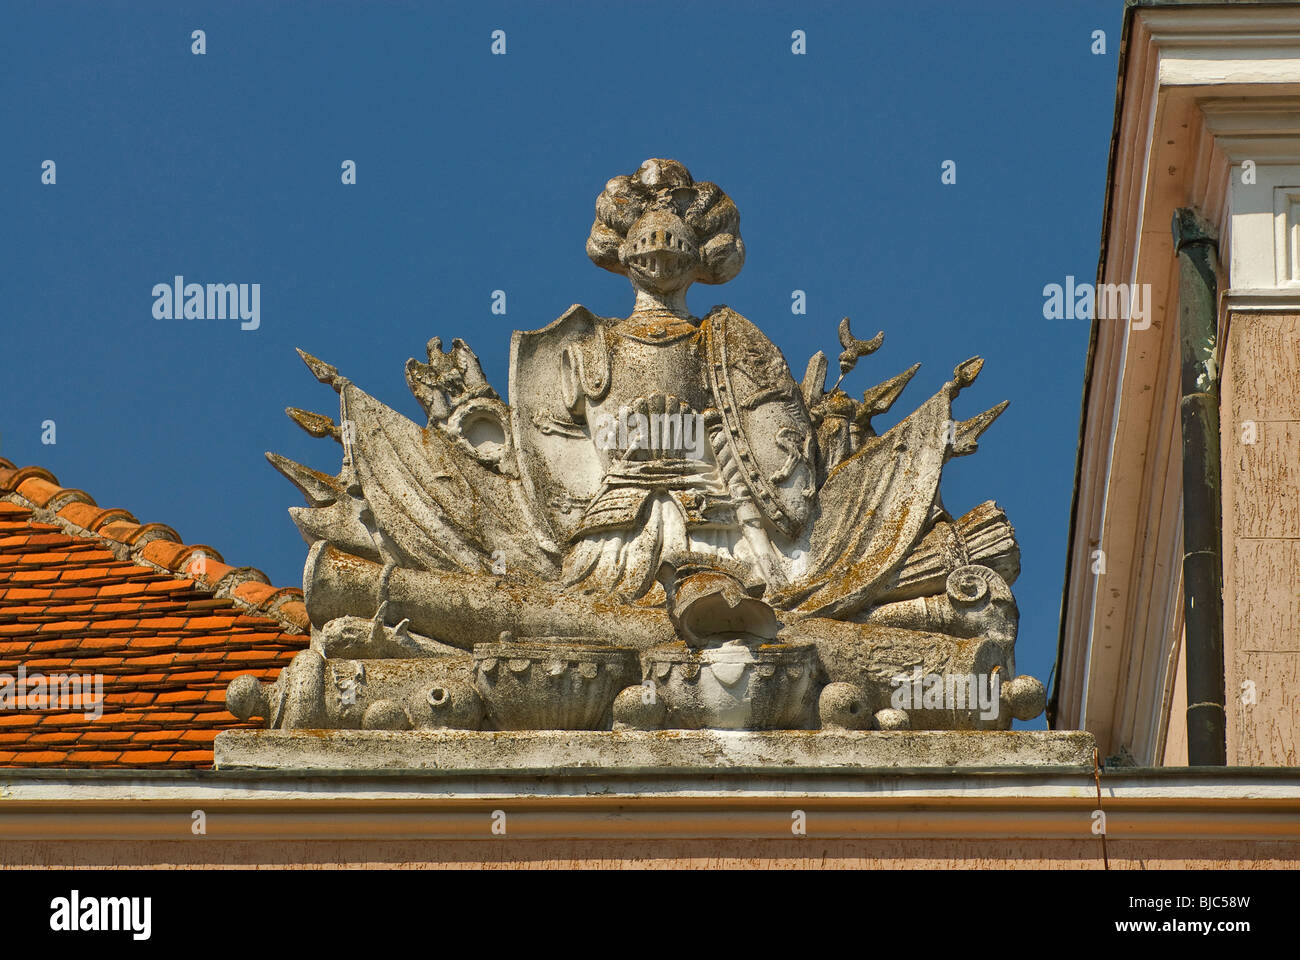 Detail at palace in village of Gębice, Wielkopolskie, Poland - Stock Image